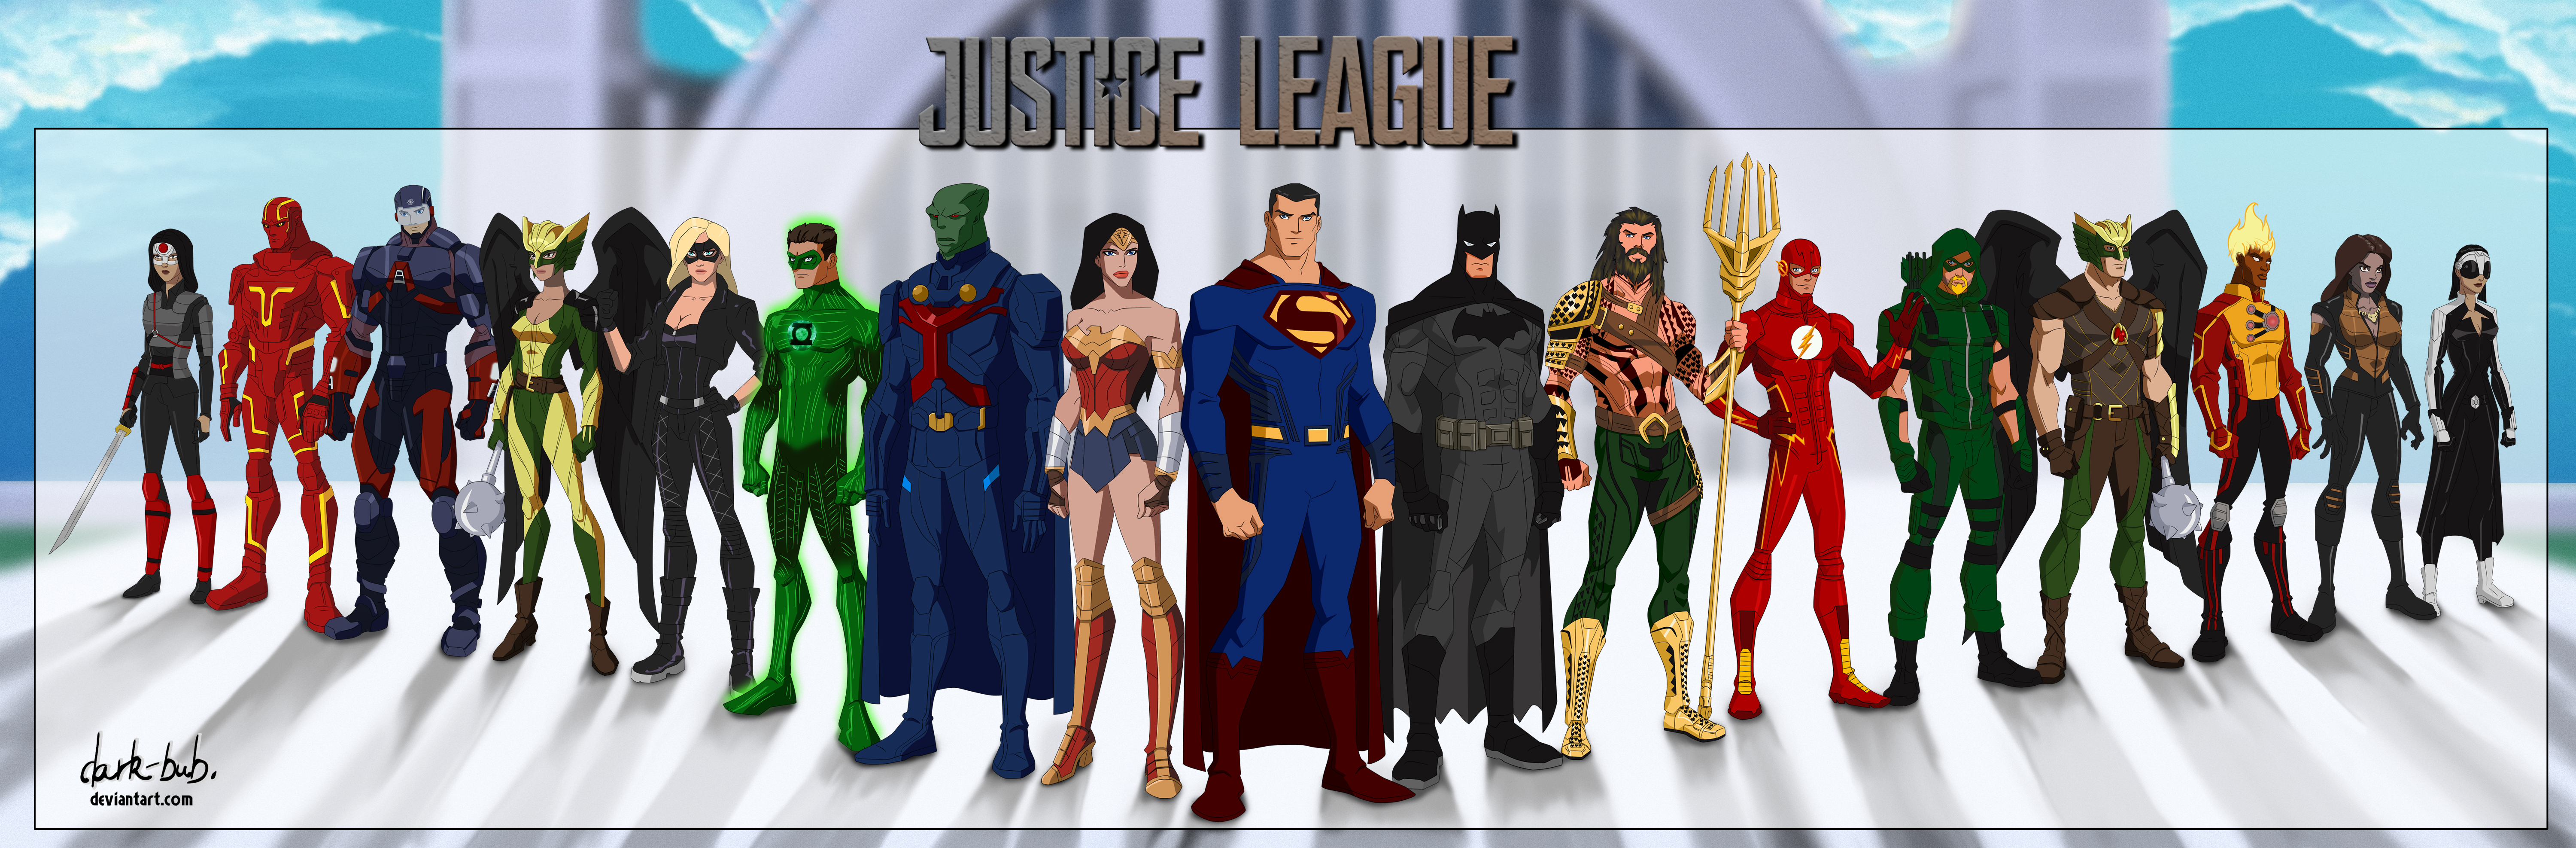 Justice League Live Movie CW Vol2 YoungJustice 662669517 likewise 27866091426117690 in addition Dress N Clothes Designs P2 Diferion Royal Women 321795017 additionally Ghost Tattoo besides Spyro Characters TLF Style 198819802. on dark design drawings